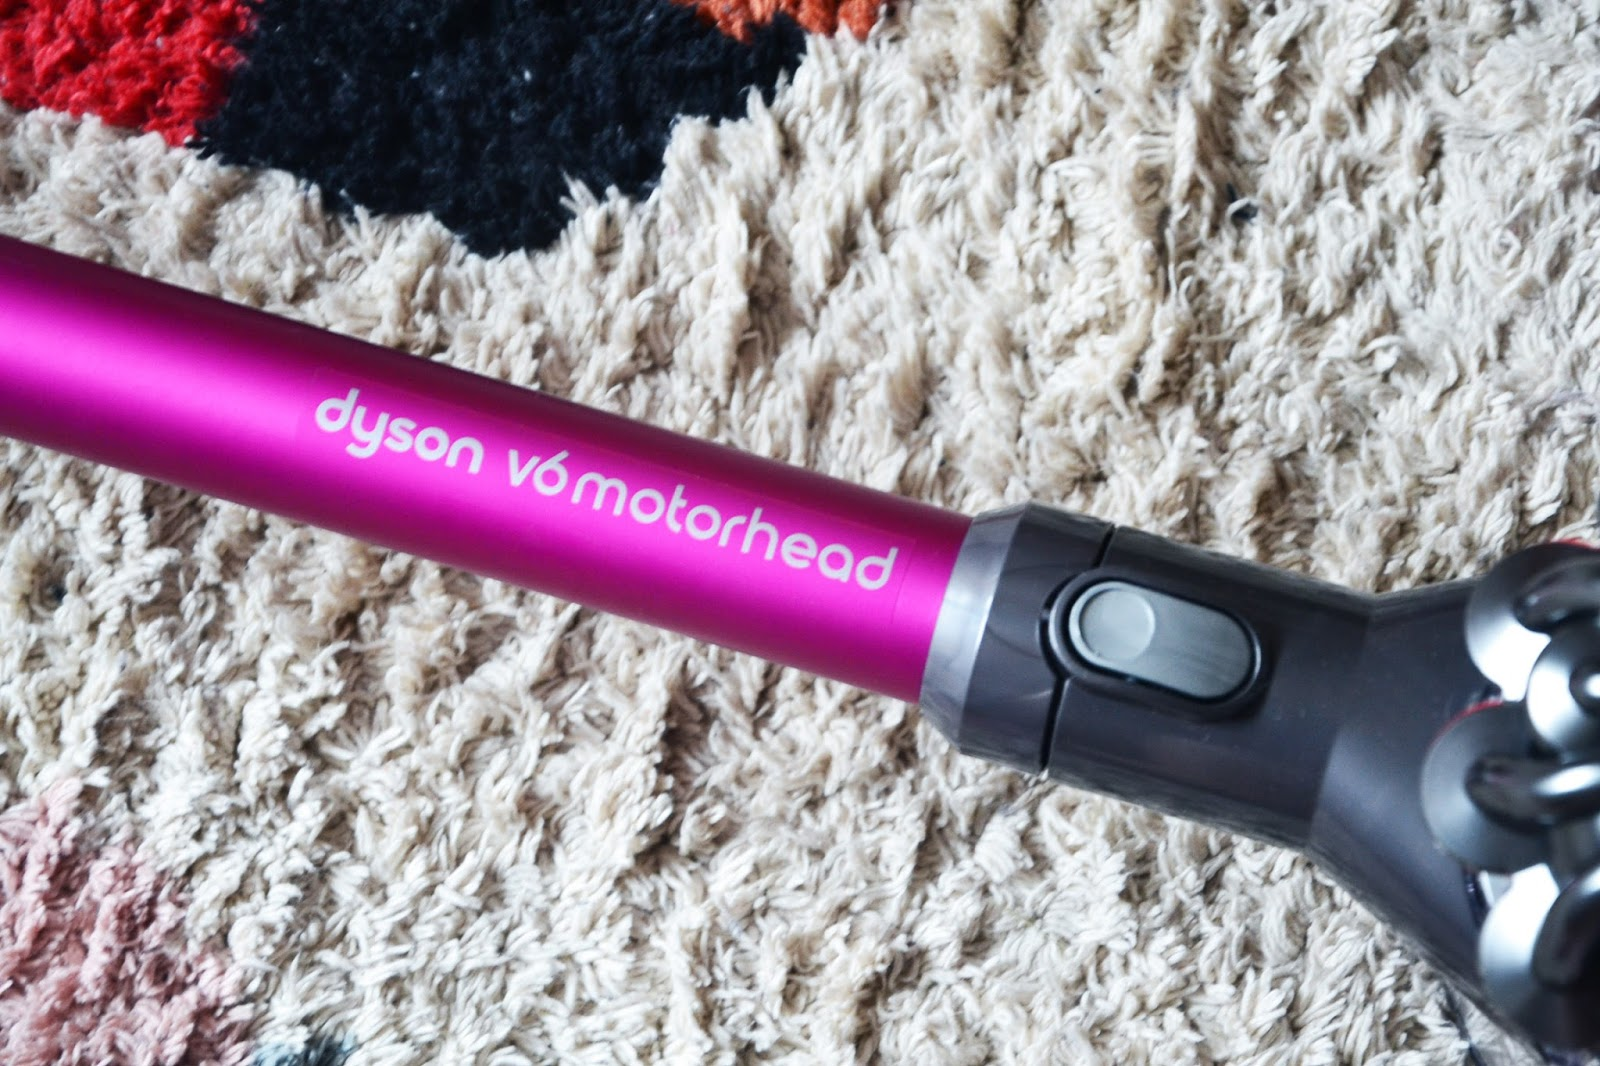 dyson v6 motorhead im test a mother 39 s love. Black Bedroom Furniture Sets. Home Design Ideas